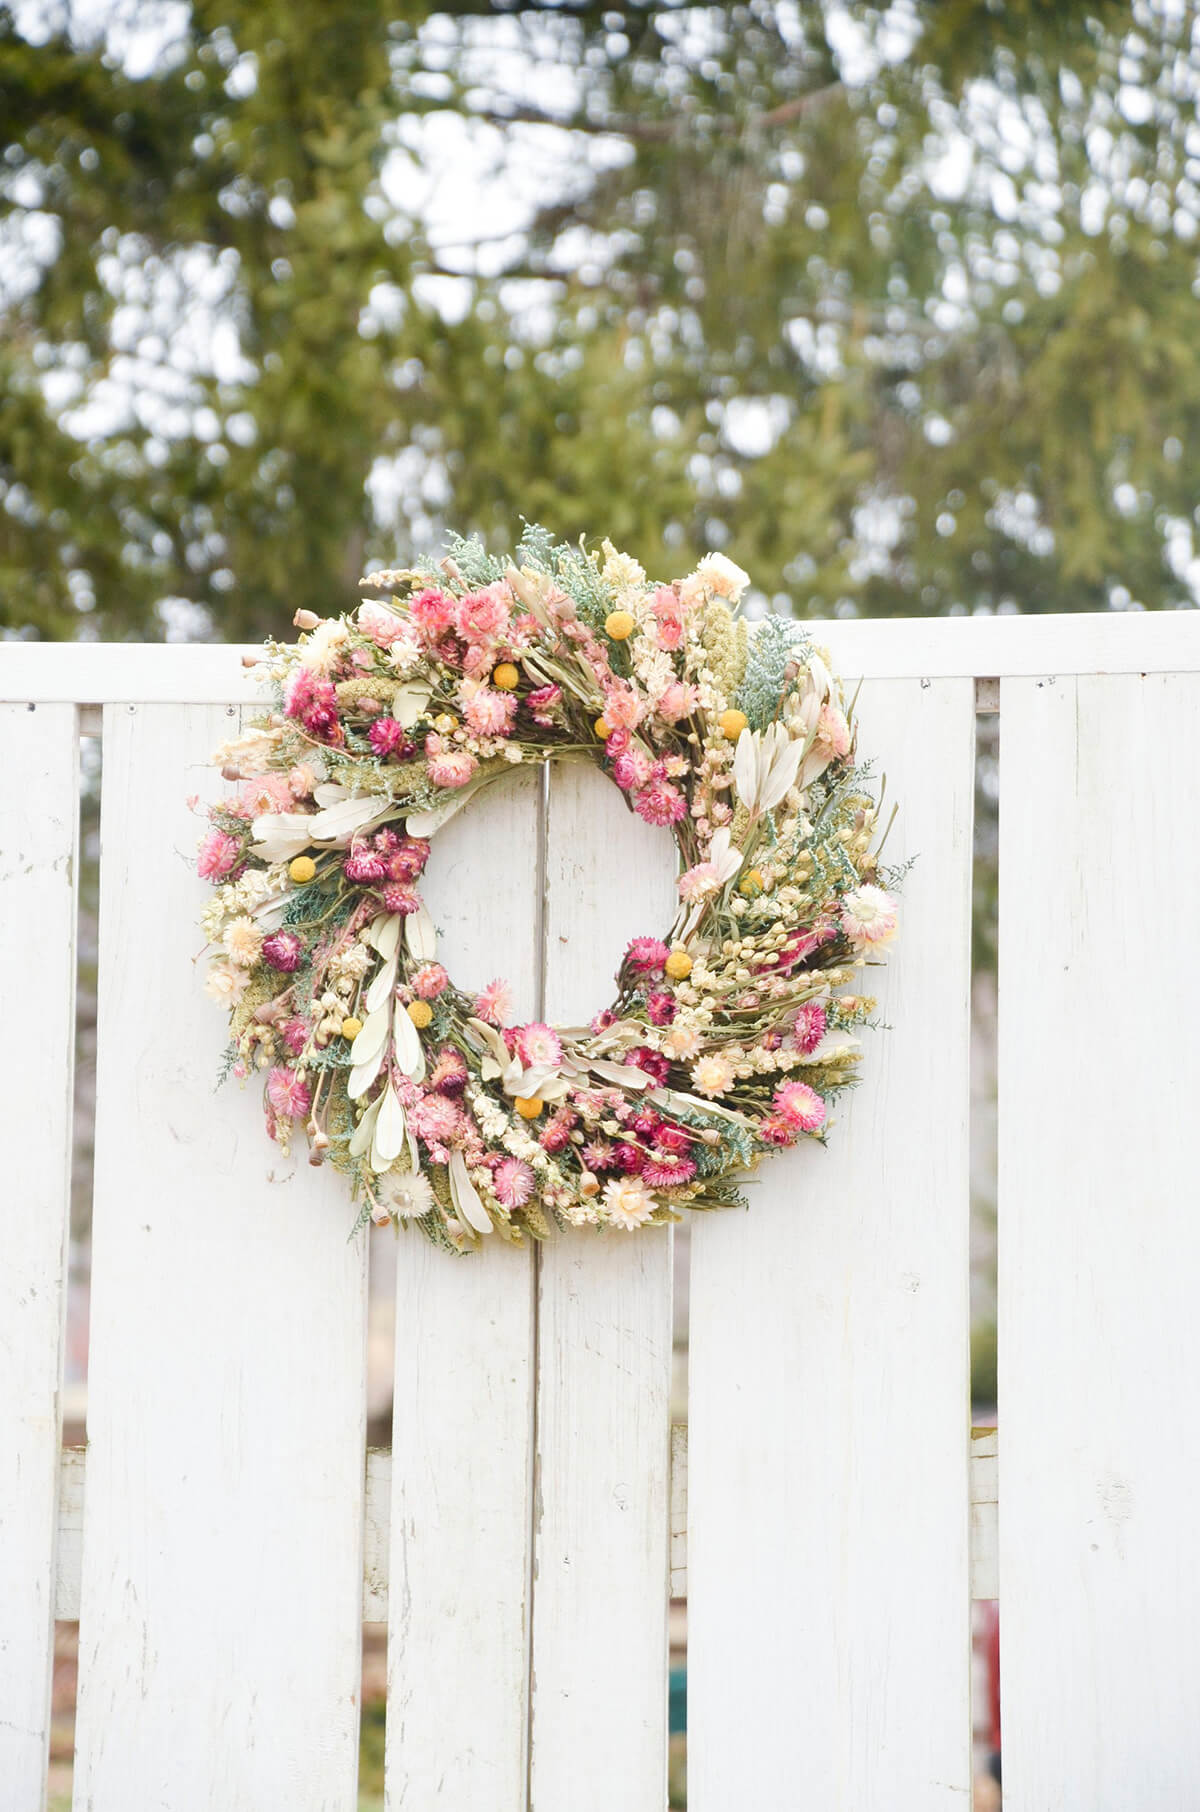 The Most Beautiful Rustic Wildflower Wreath